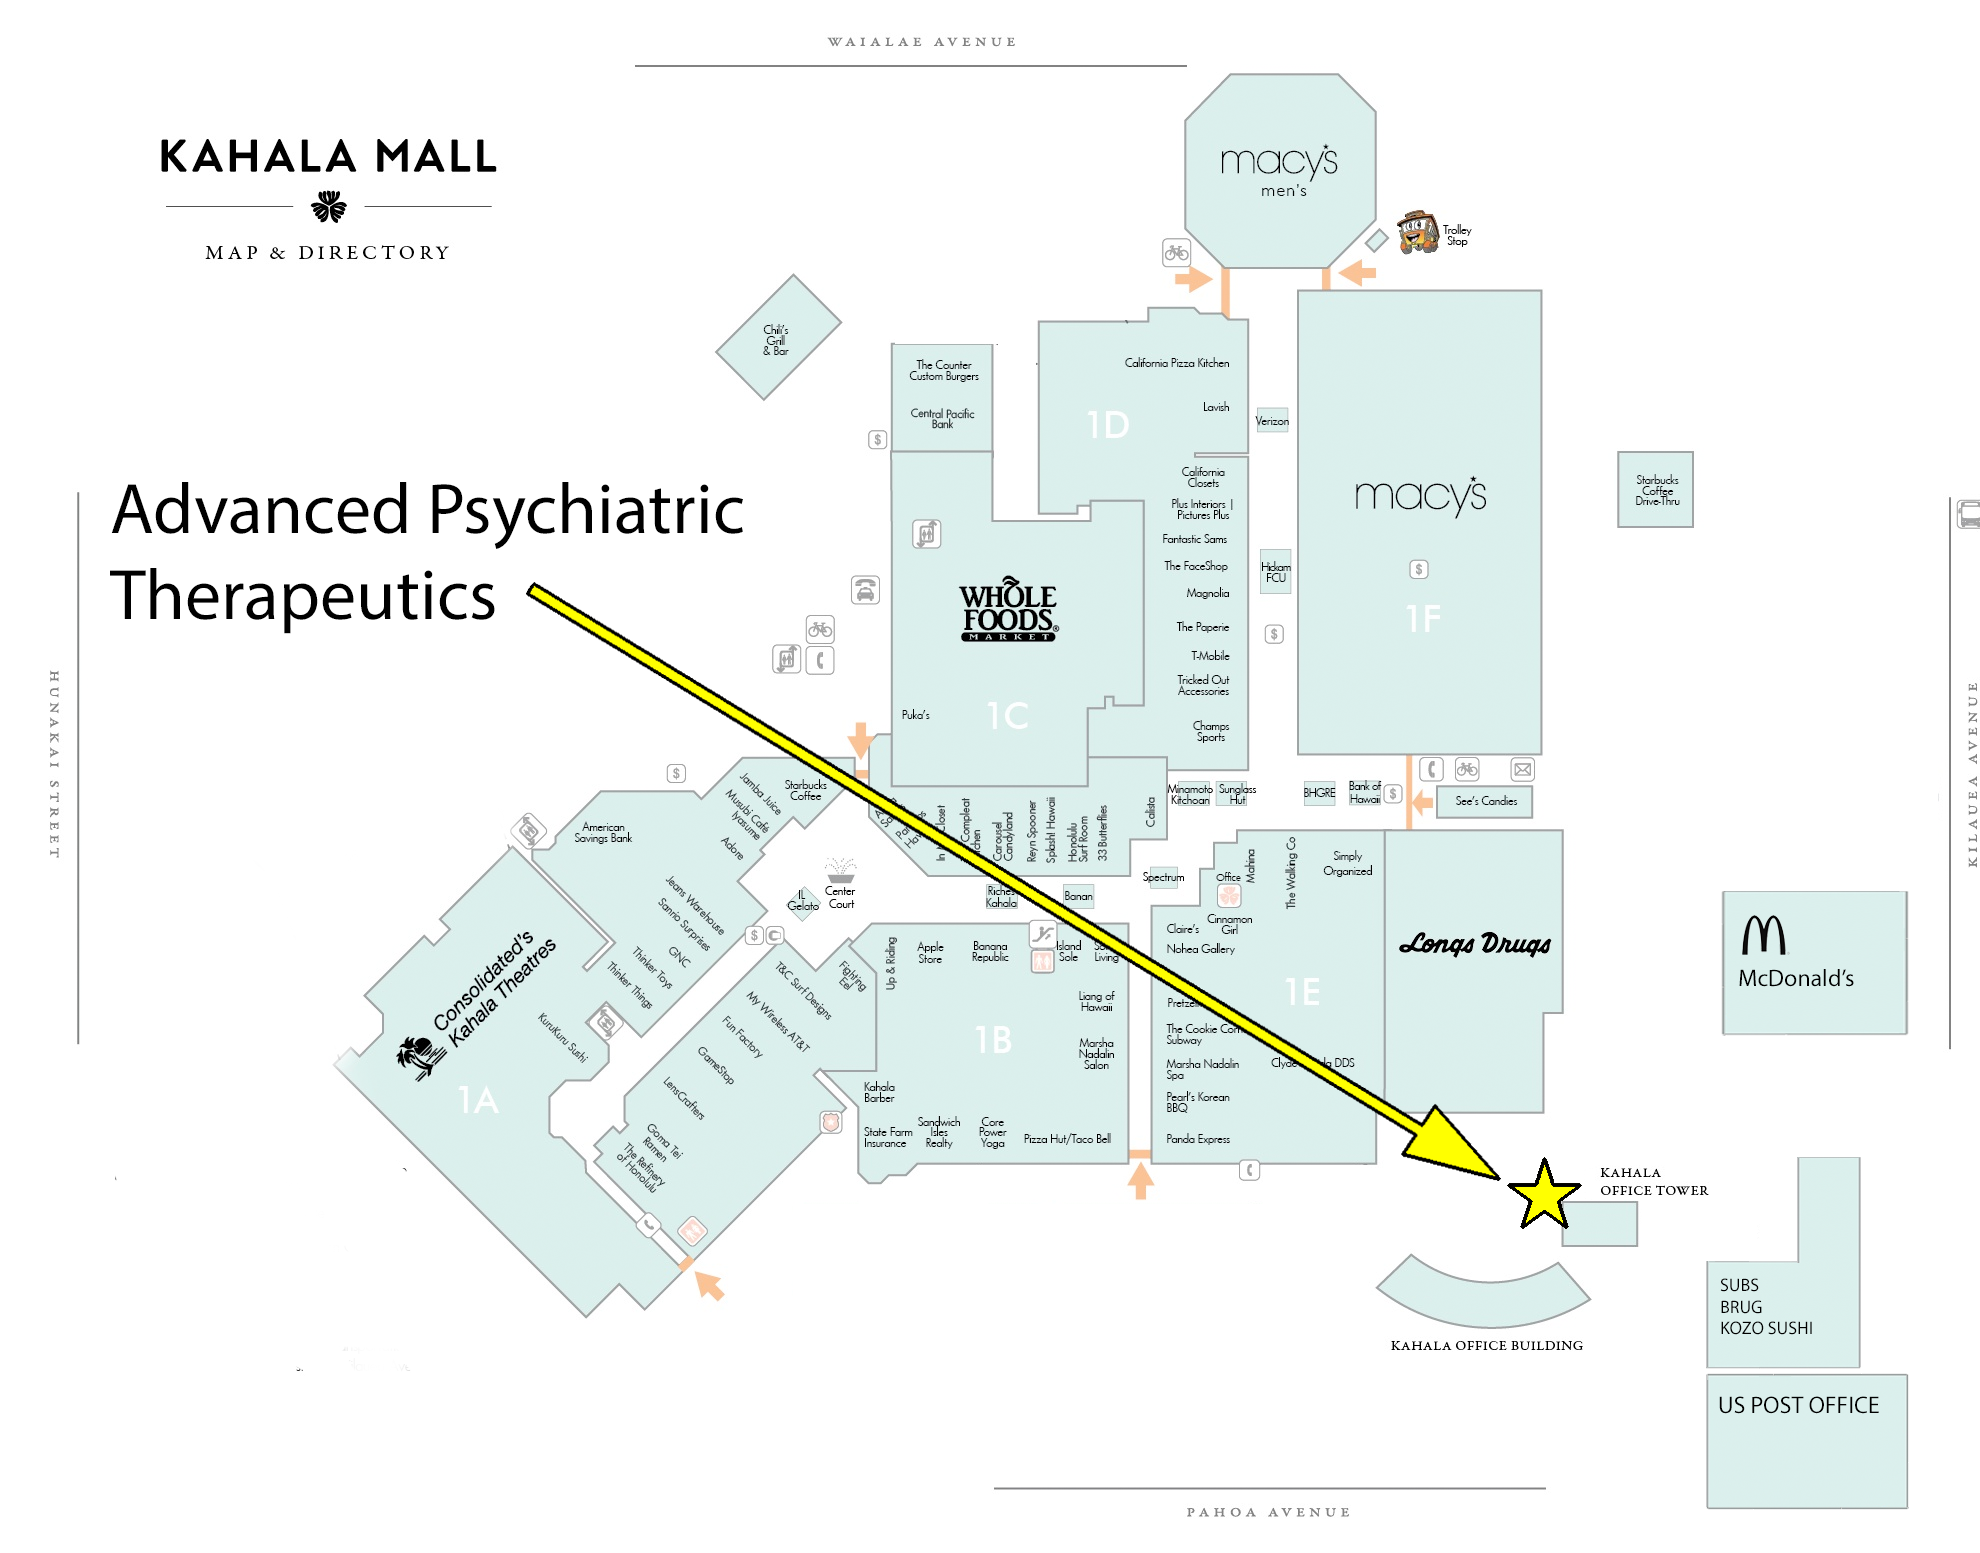 Map of Kahala Mall area showing APT